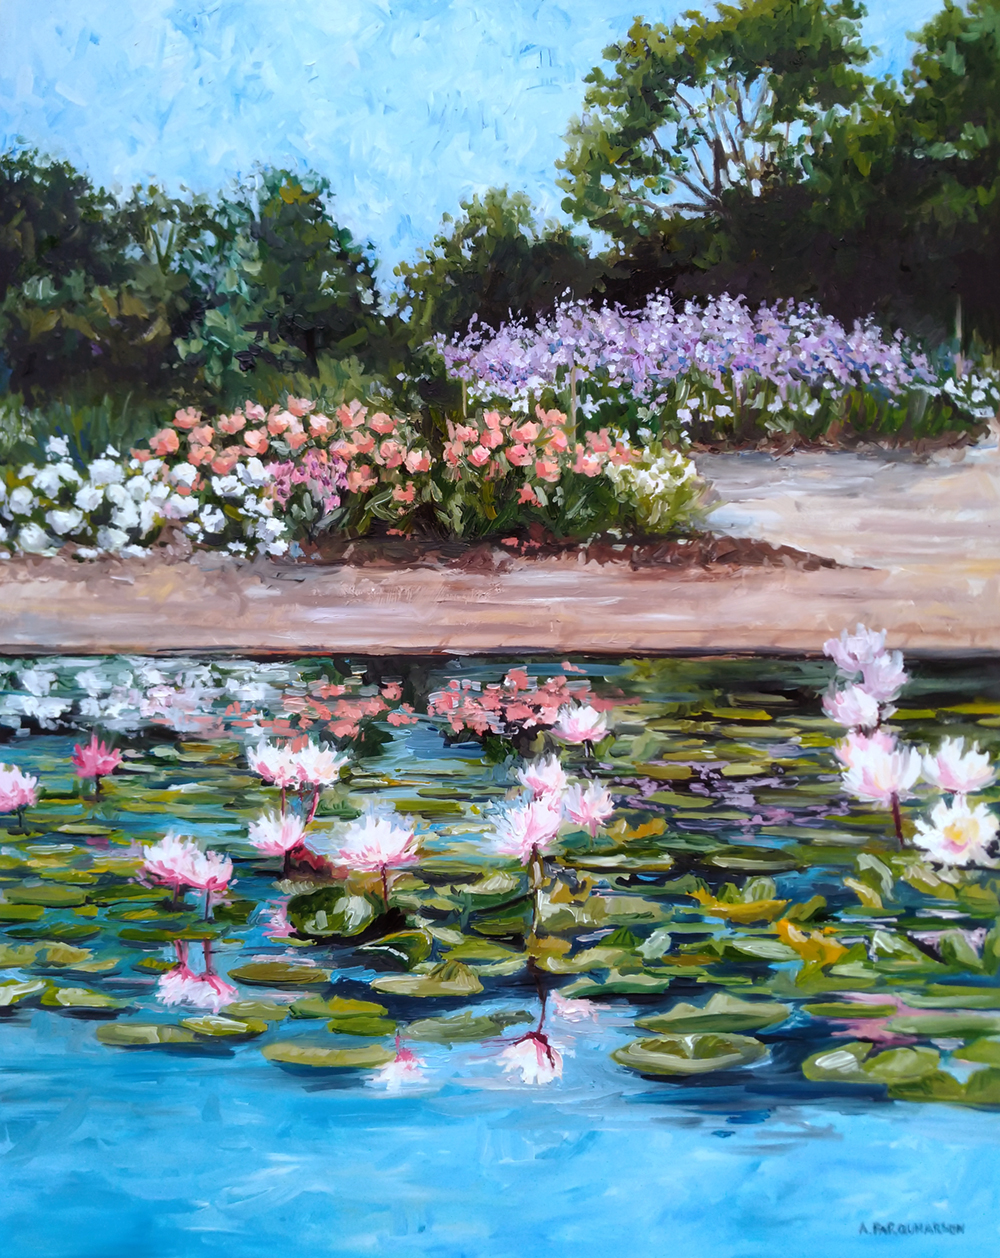 Roses and Water Lilies by Amanda Farquharson 16 x 20 inches, oil on panel